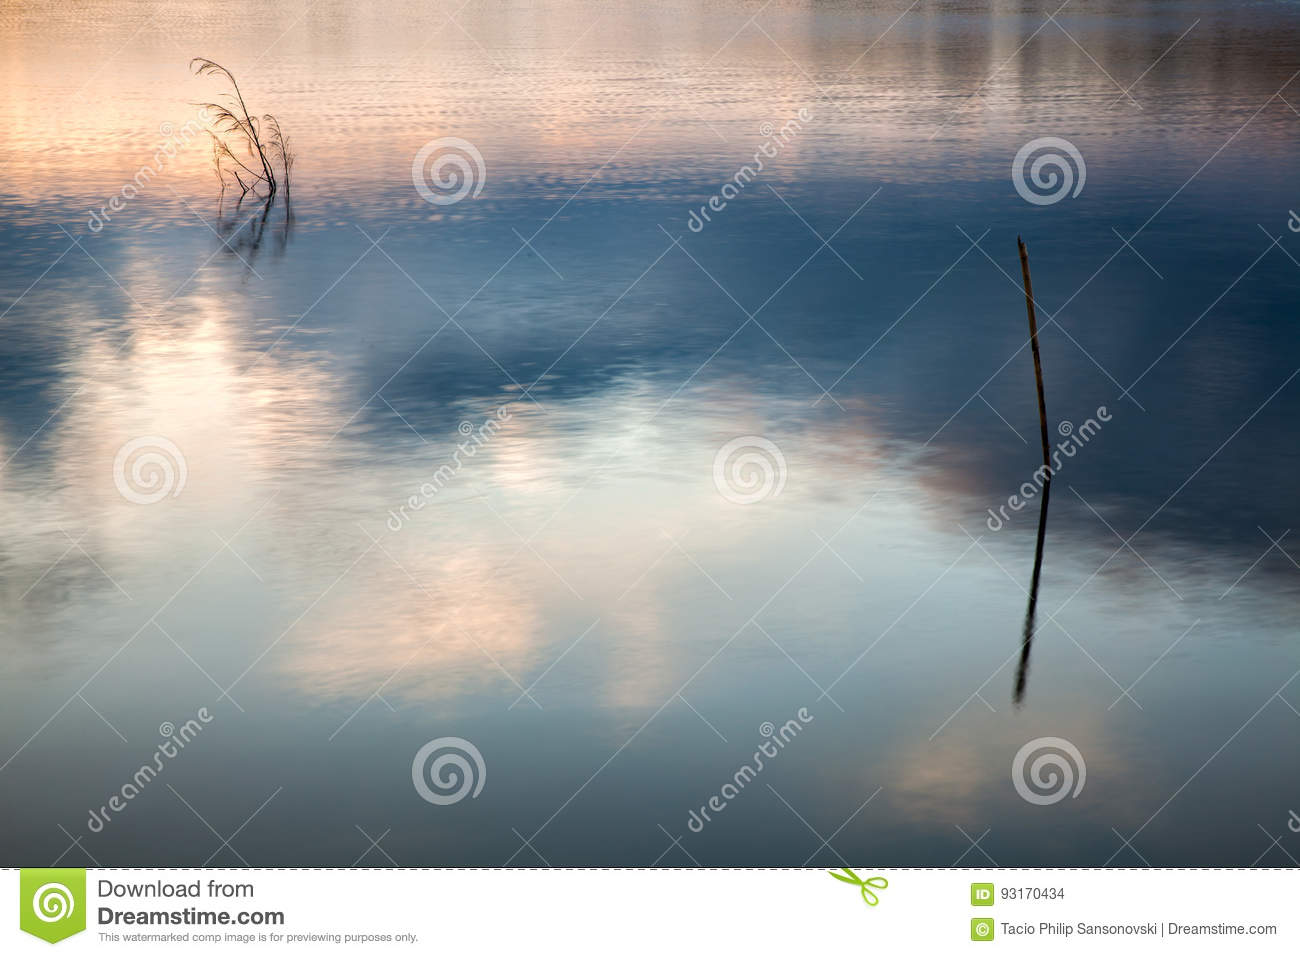 Trunks in water lake with sky reflections